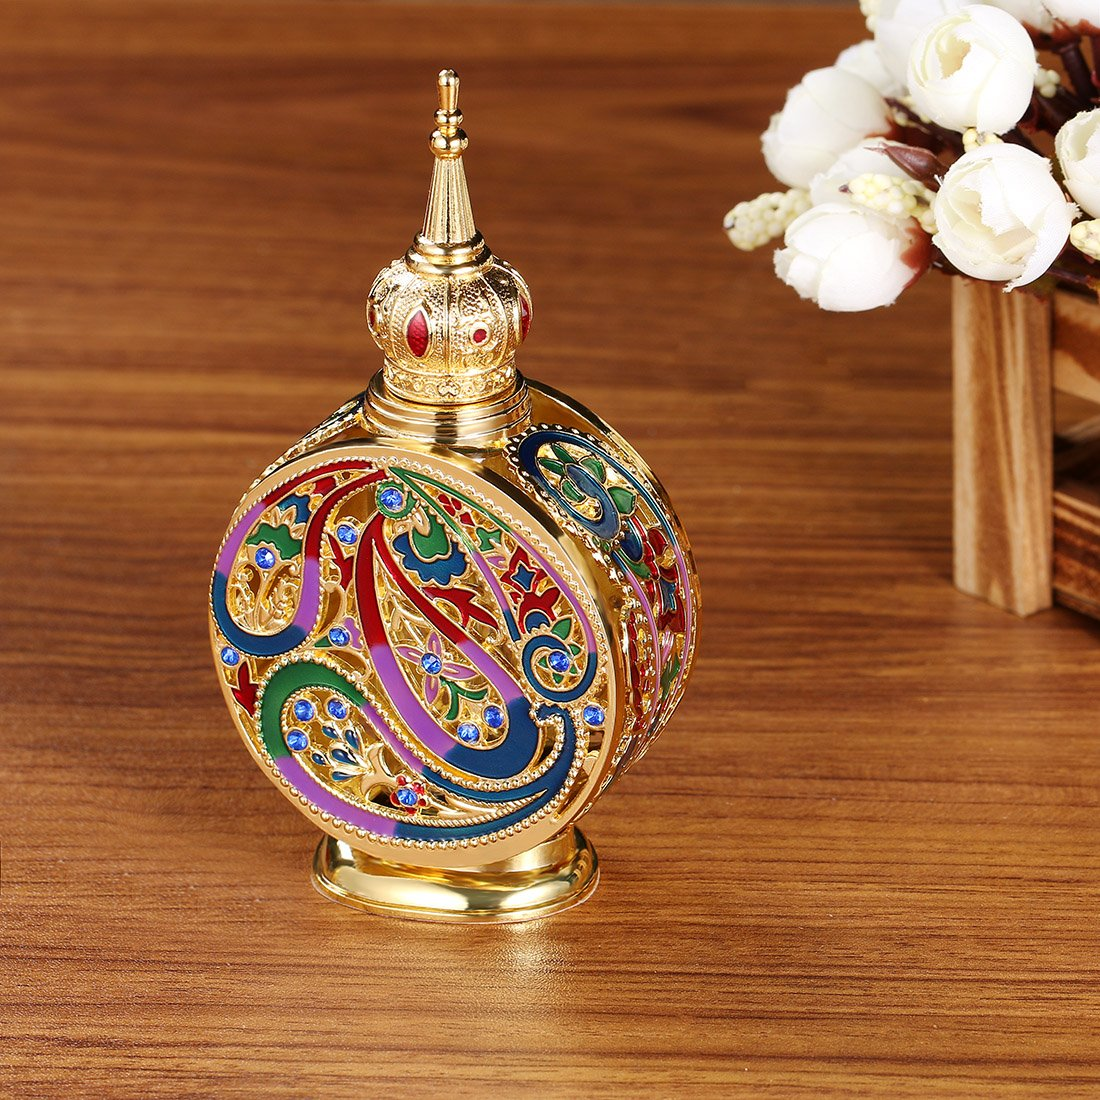 H&D Vintage 18ml Empty Refillable Egyptian Style Enameled Metal and Glass Perfume Bottle 4